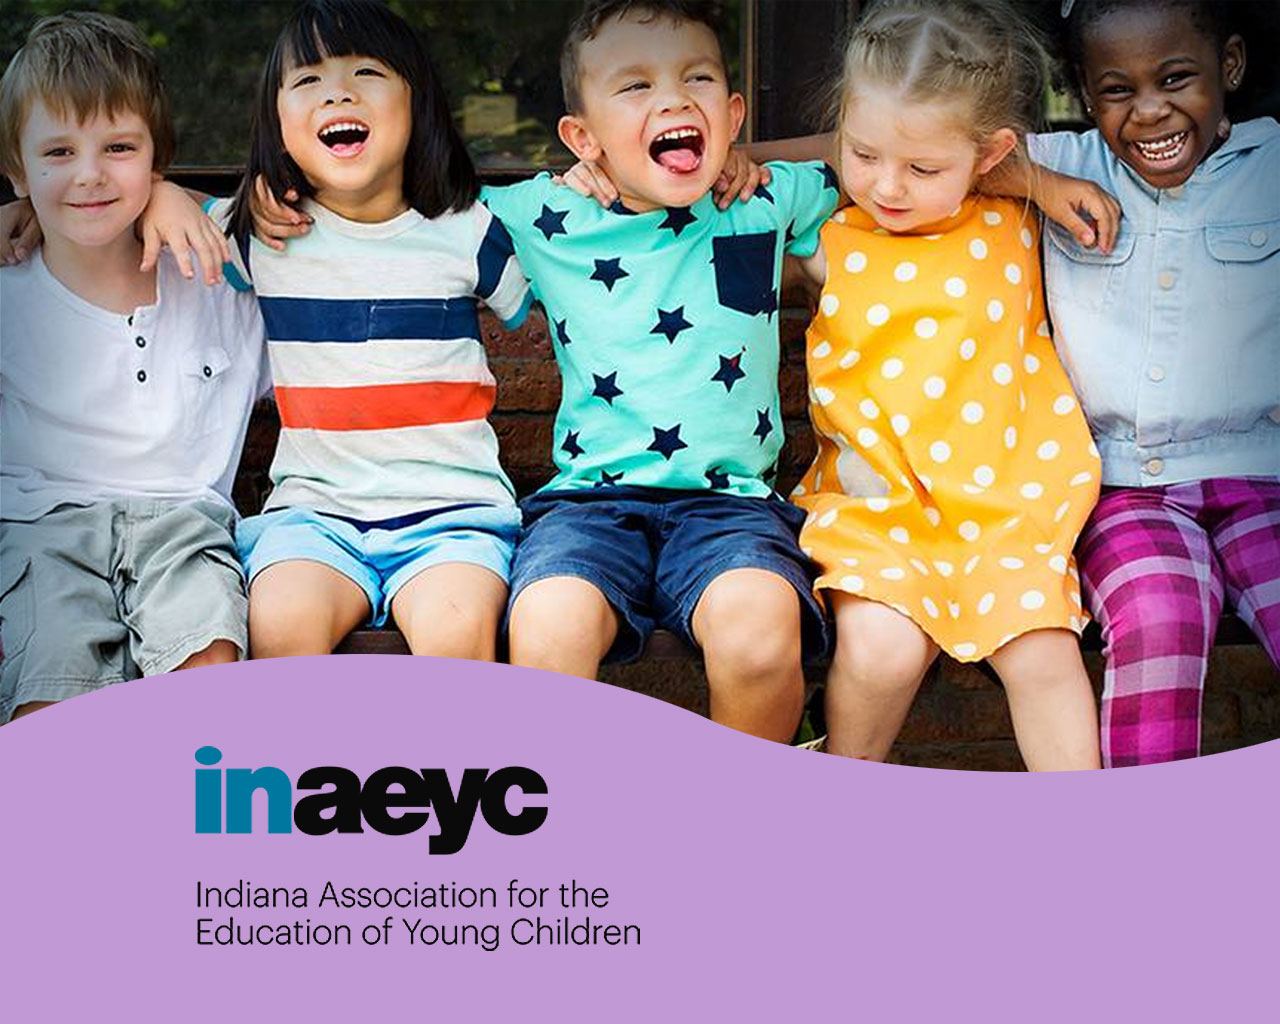 INAEYC Indiana Association for the Education of Young Children